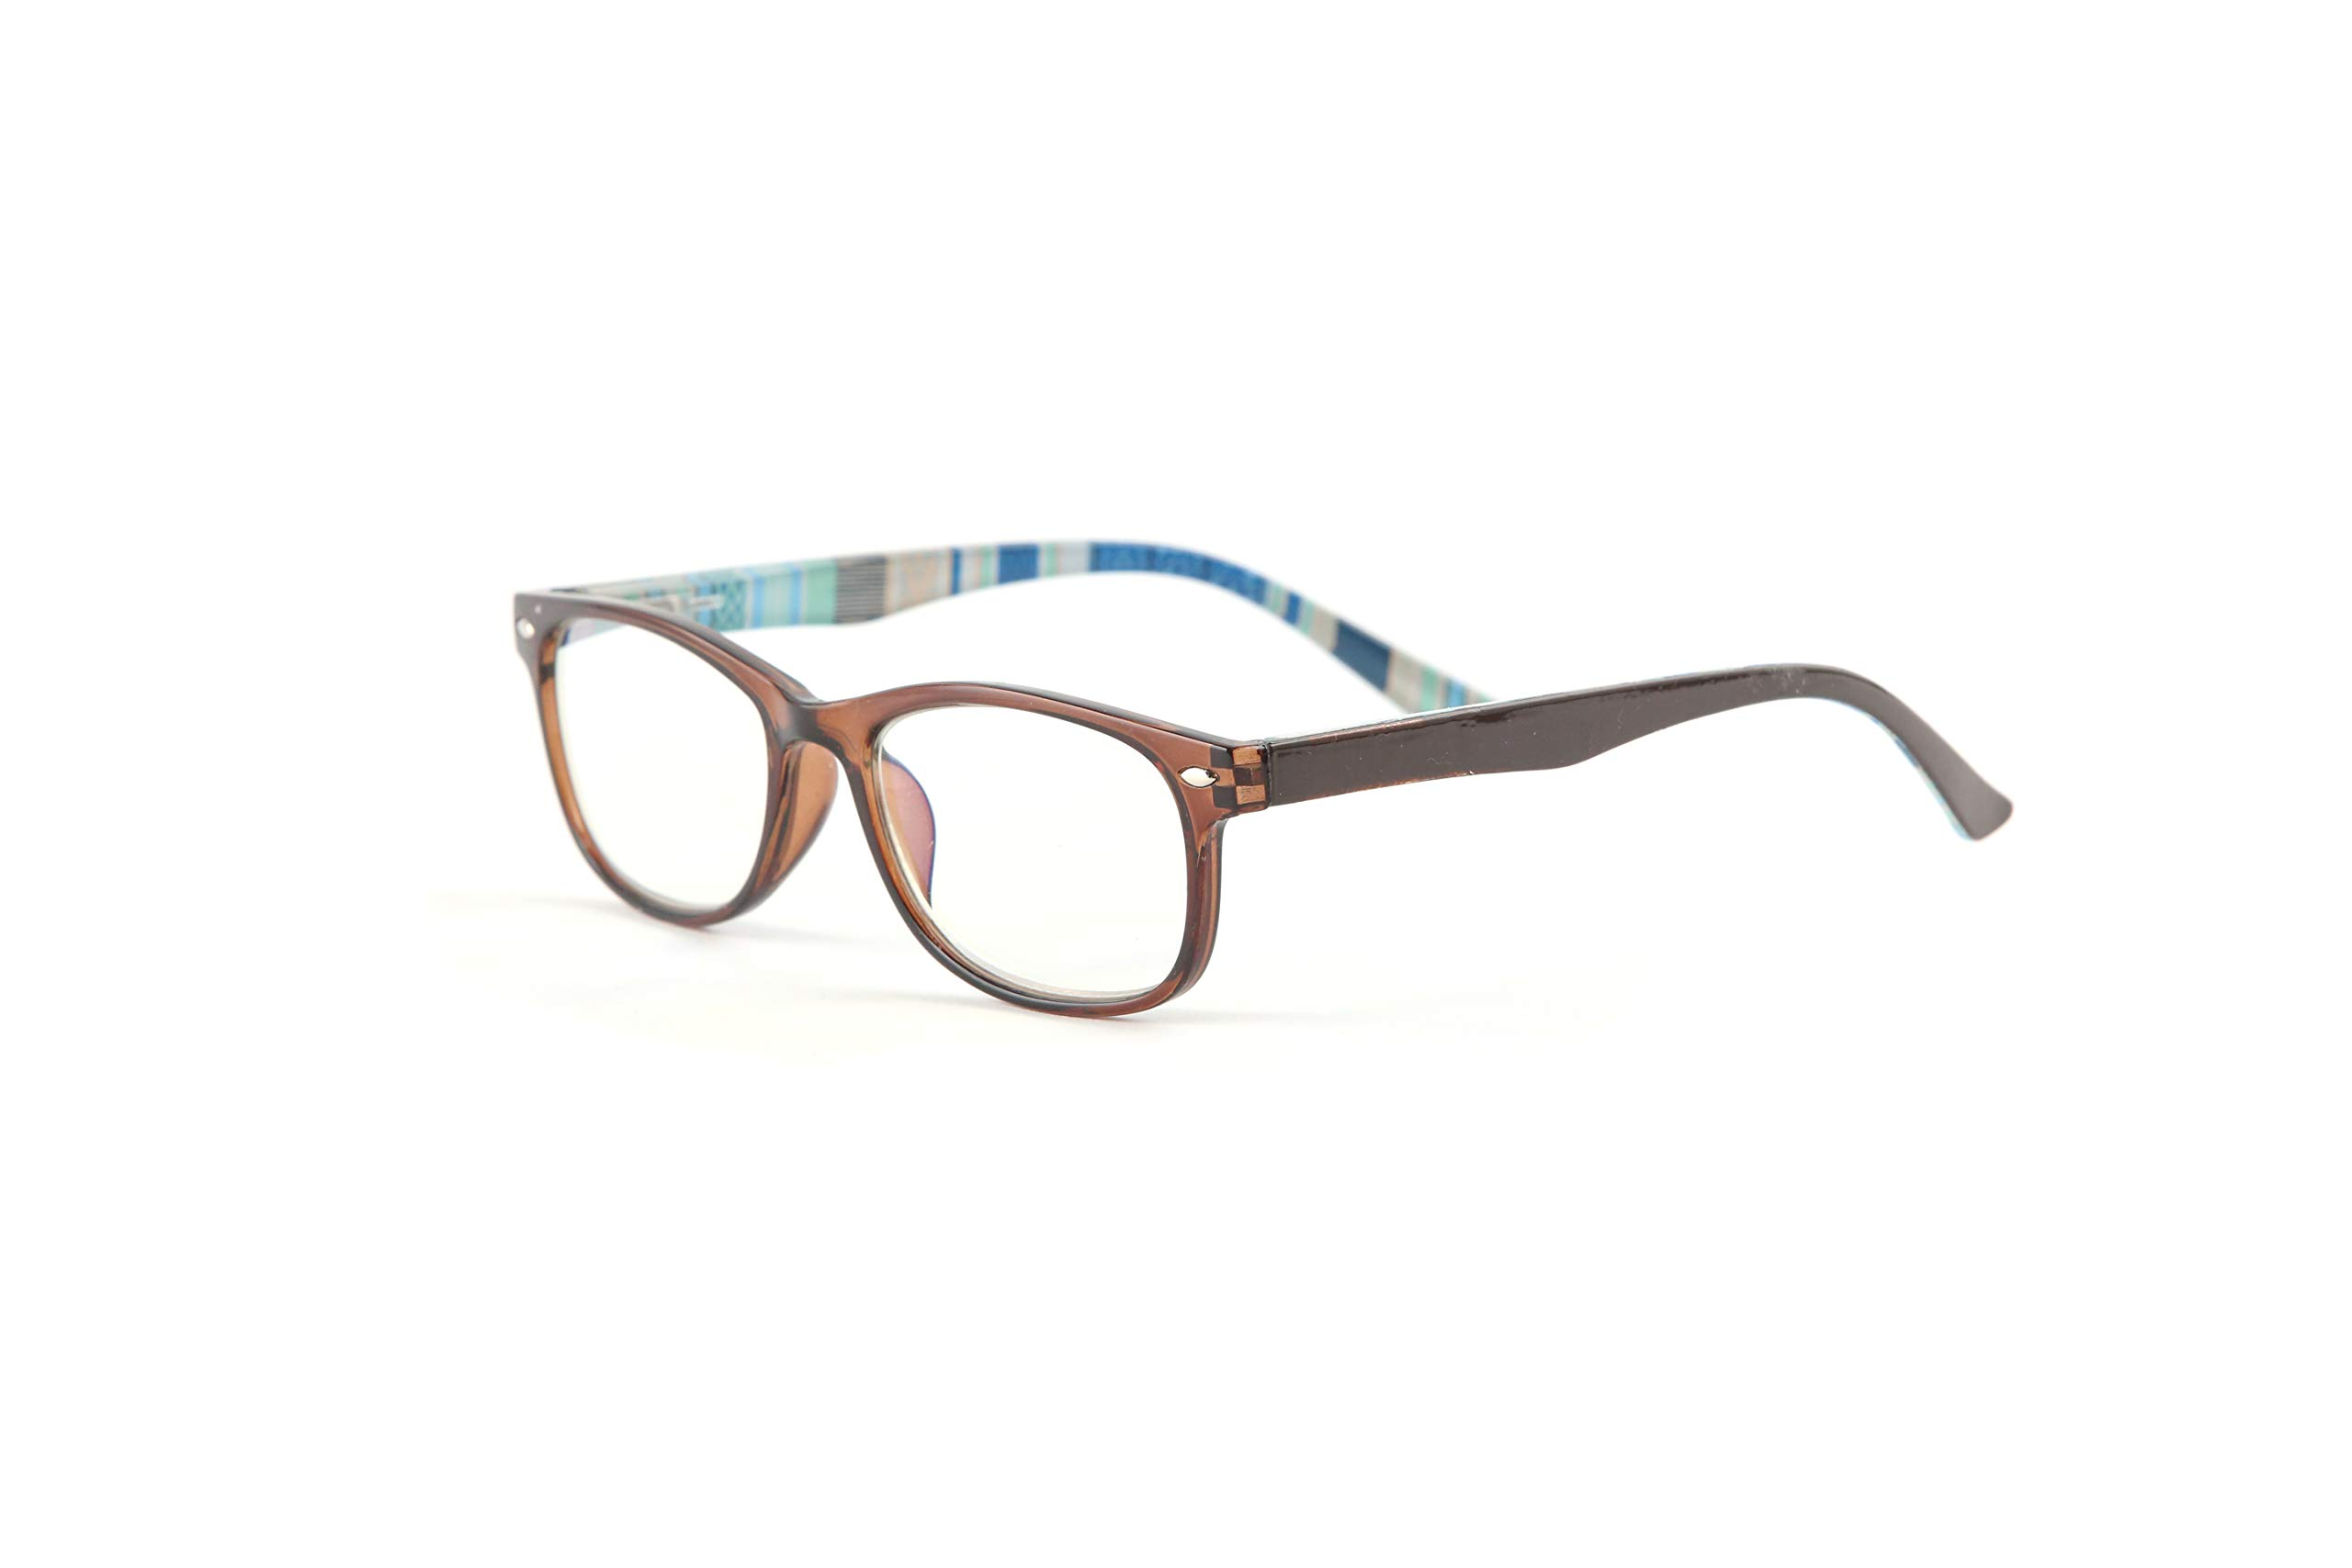 Readerest Blue Light Blocking Reading Glasses, UV Protection and Anti-Reflective Lenses, Spring Hinge Computer Reading Glasses, Multi-Style (Brown/Blue, 1.25)